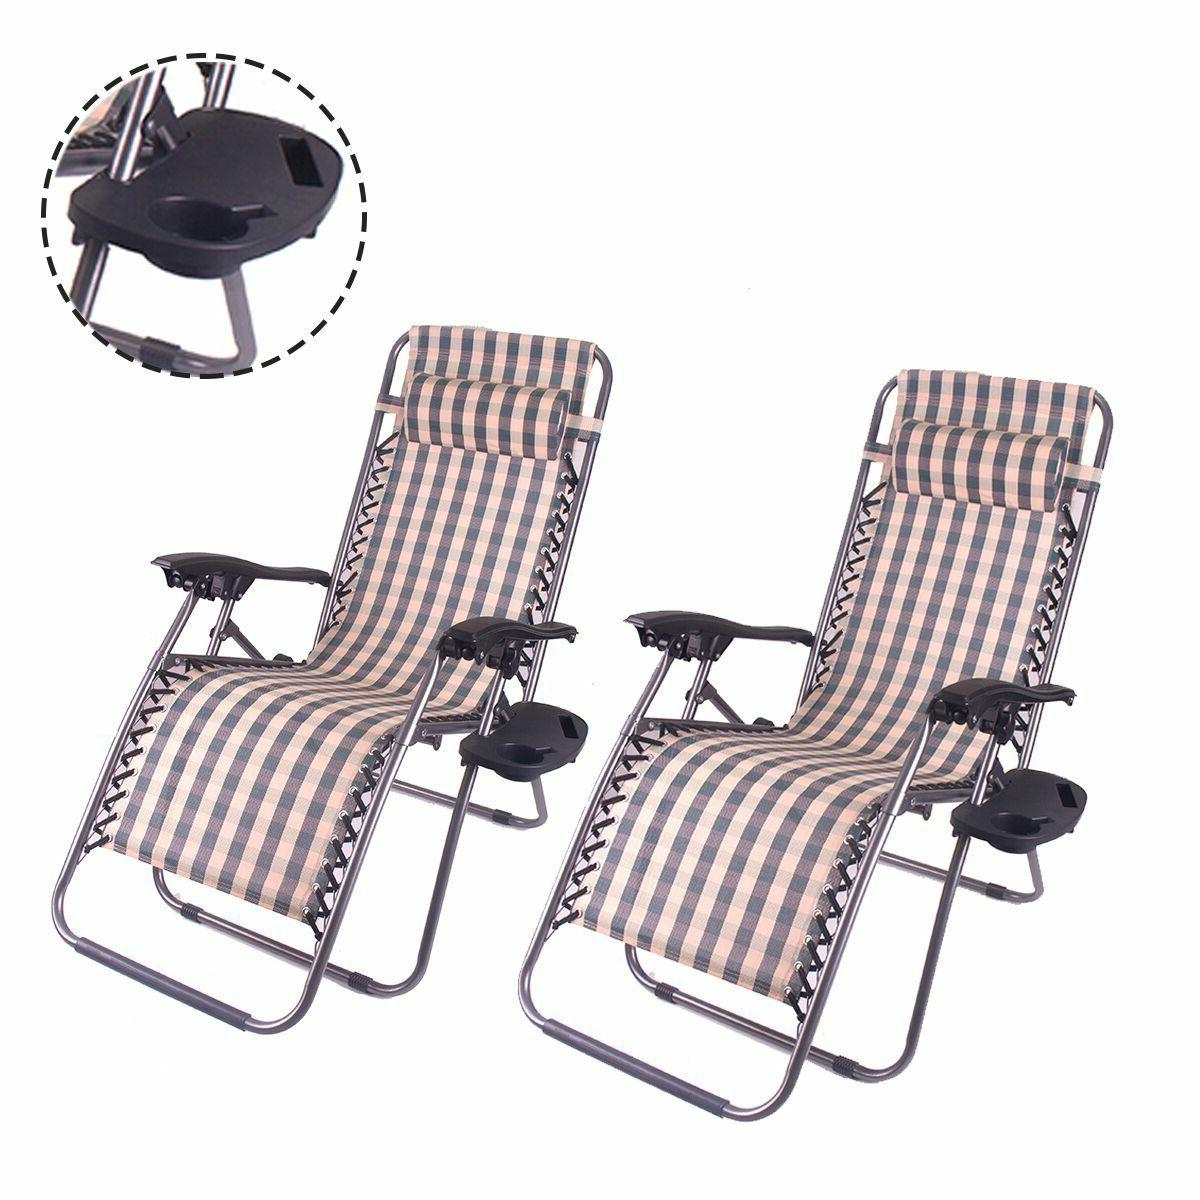 Outdoor Gravity Lounge Chair Beach Patio Folding 2PC